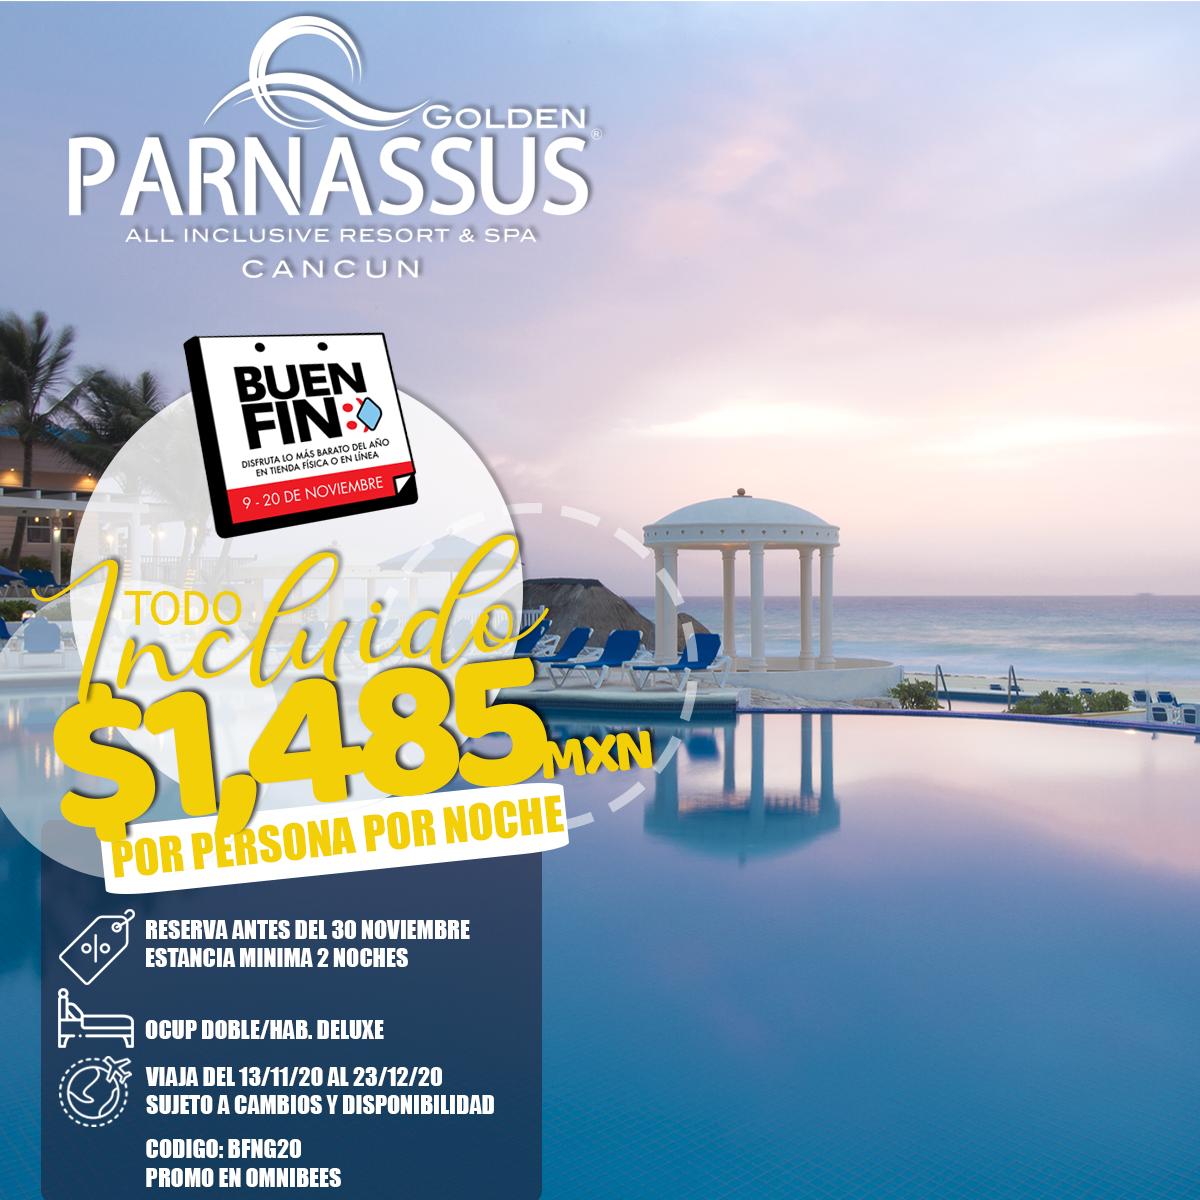 GOLDEN PARNASSUS CANCUN